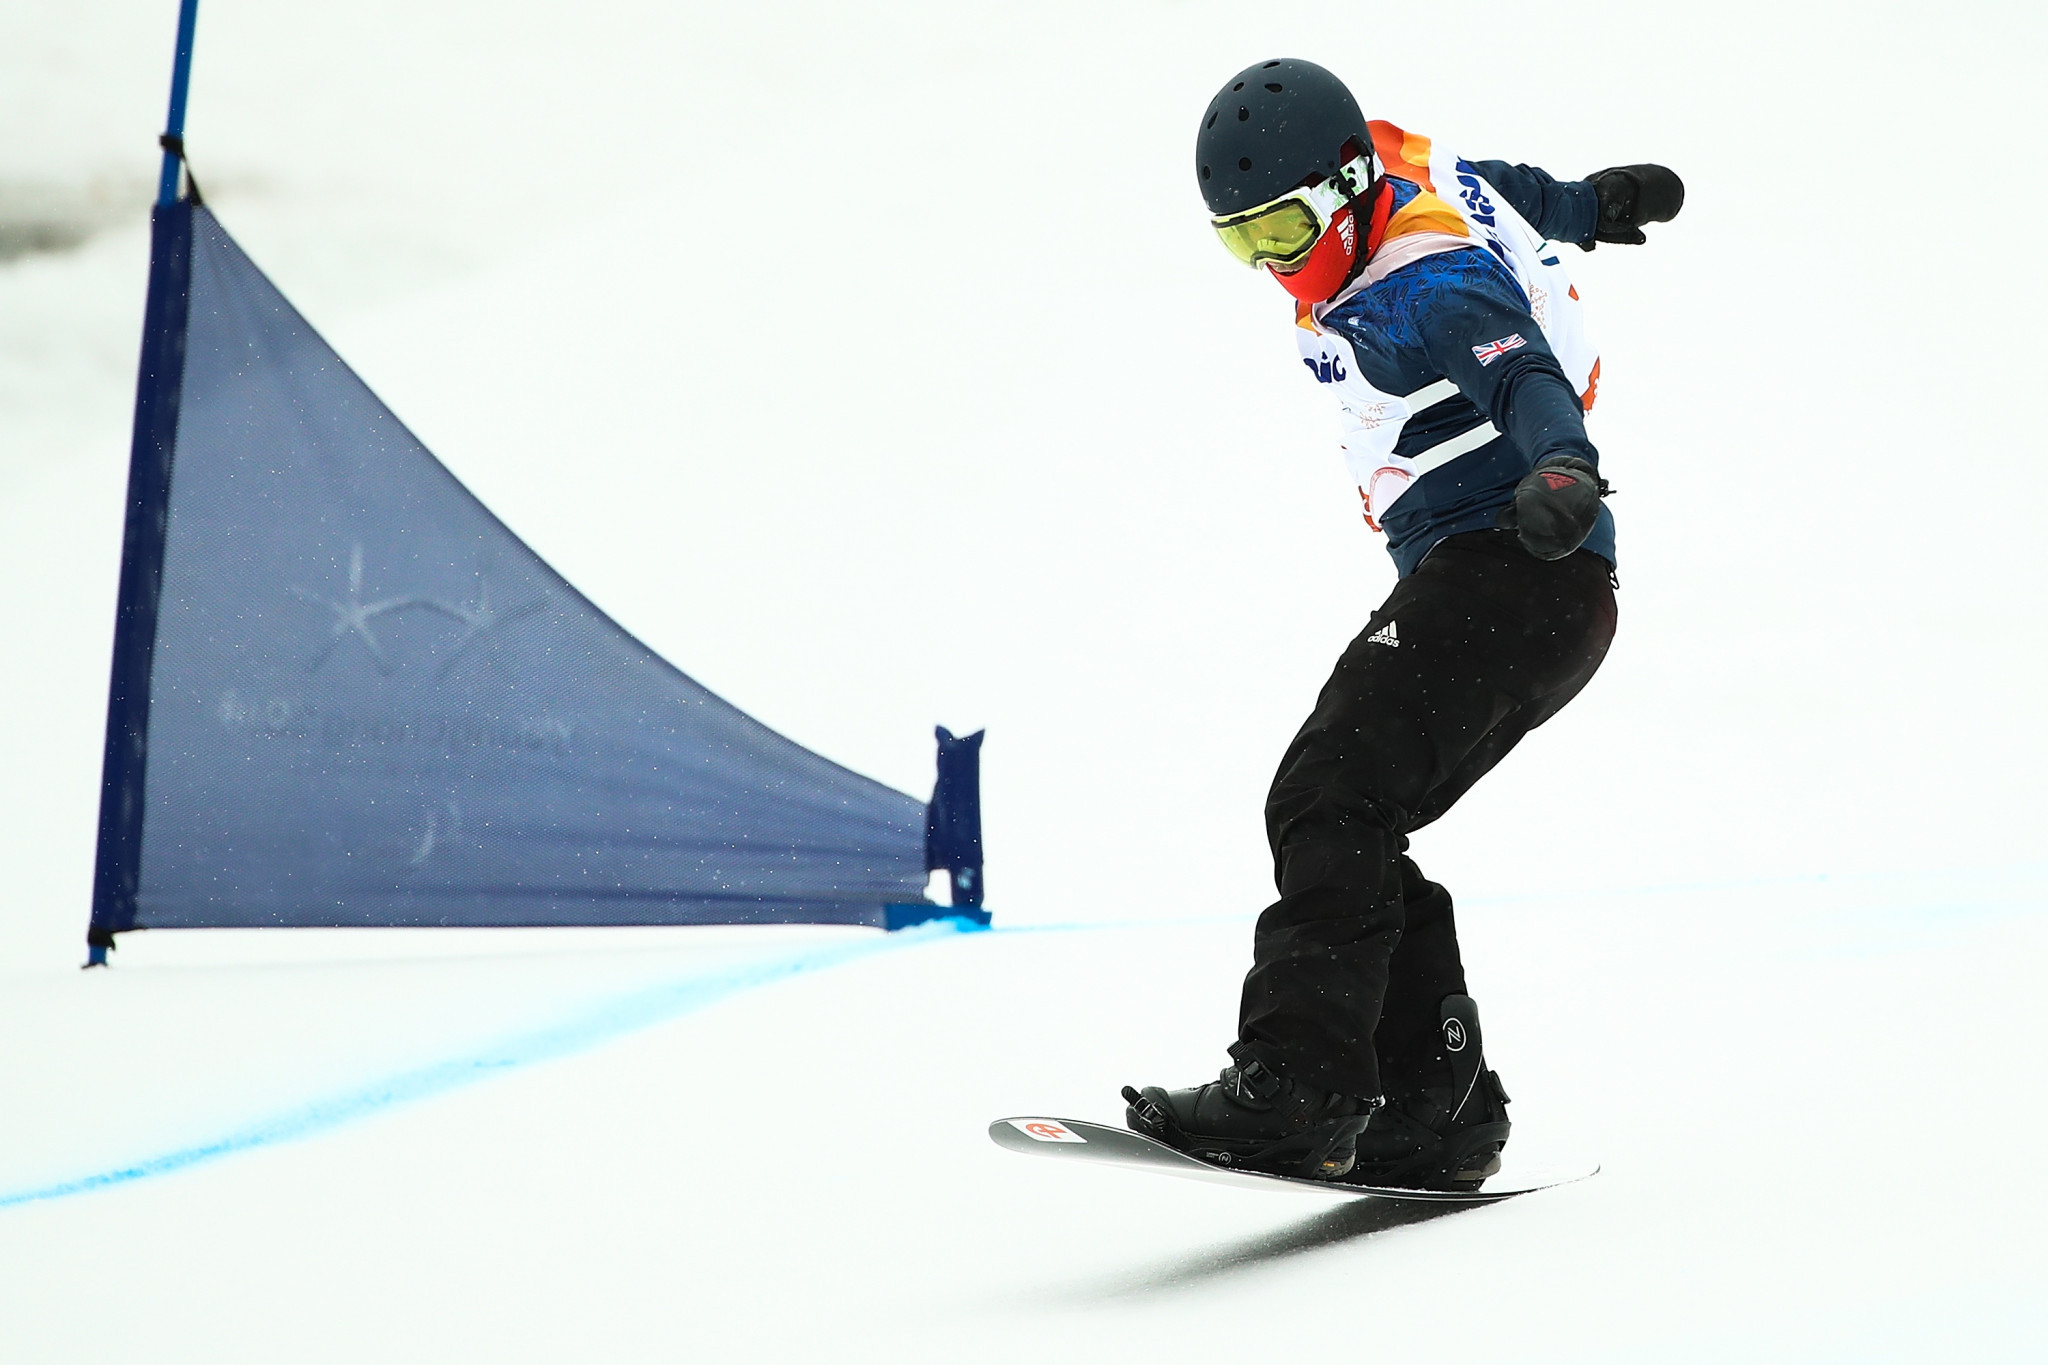 Barnes-Miller ready for World Para Snowboard World Cup in Pyha after injury scare